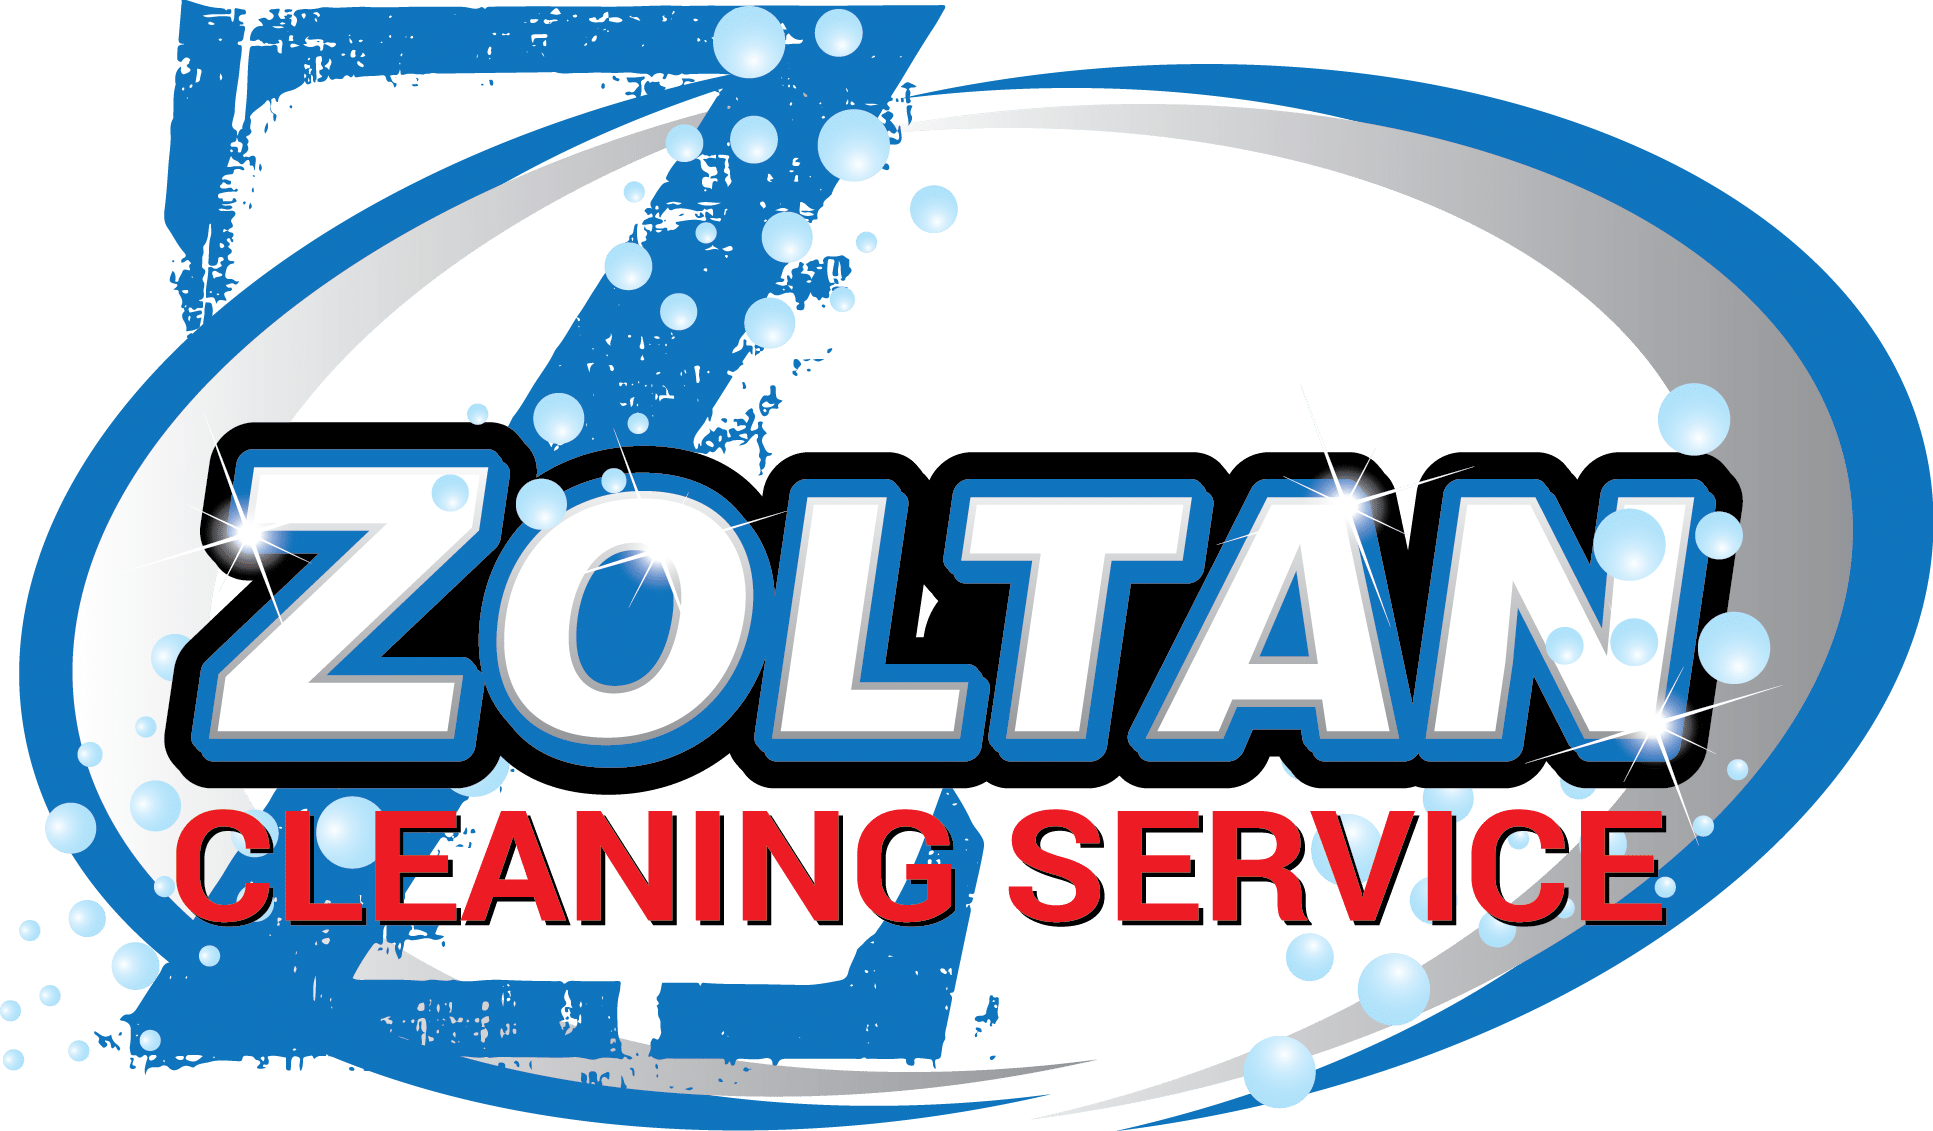 Zoltan Cleaning